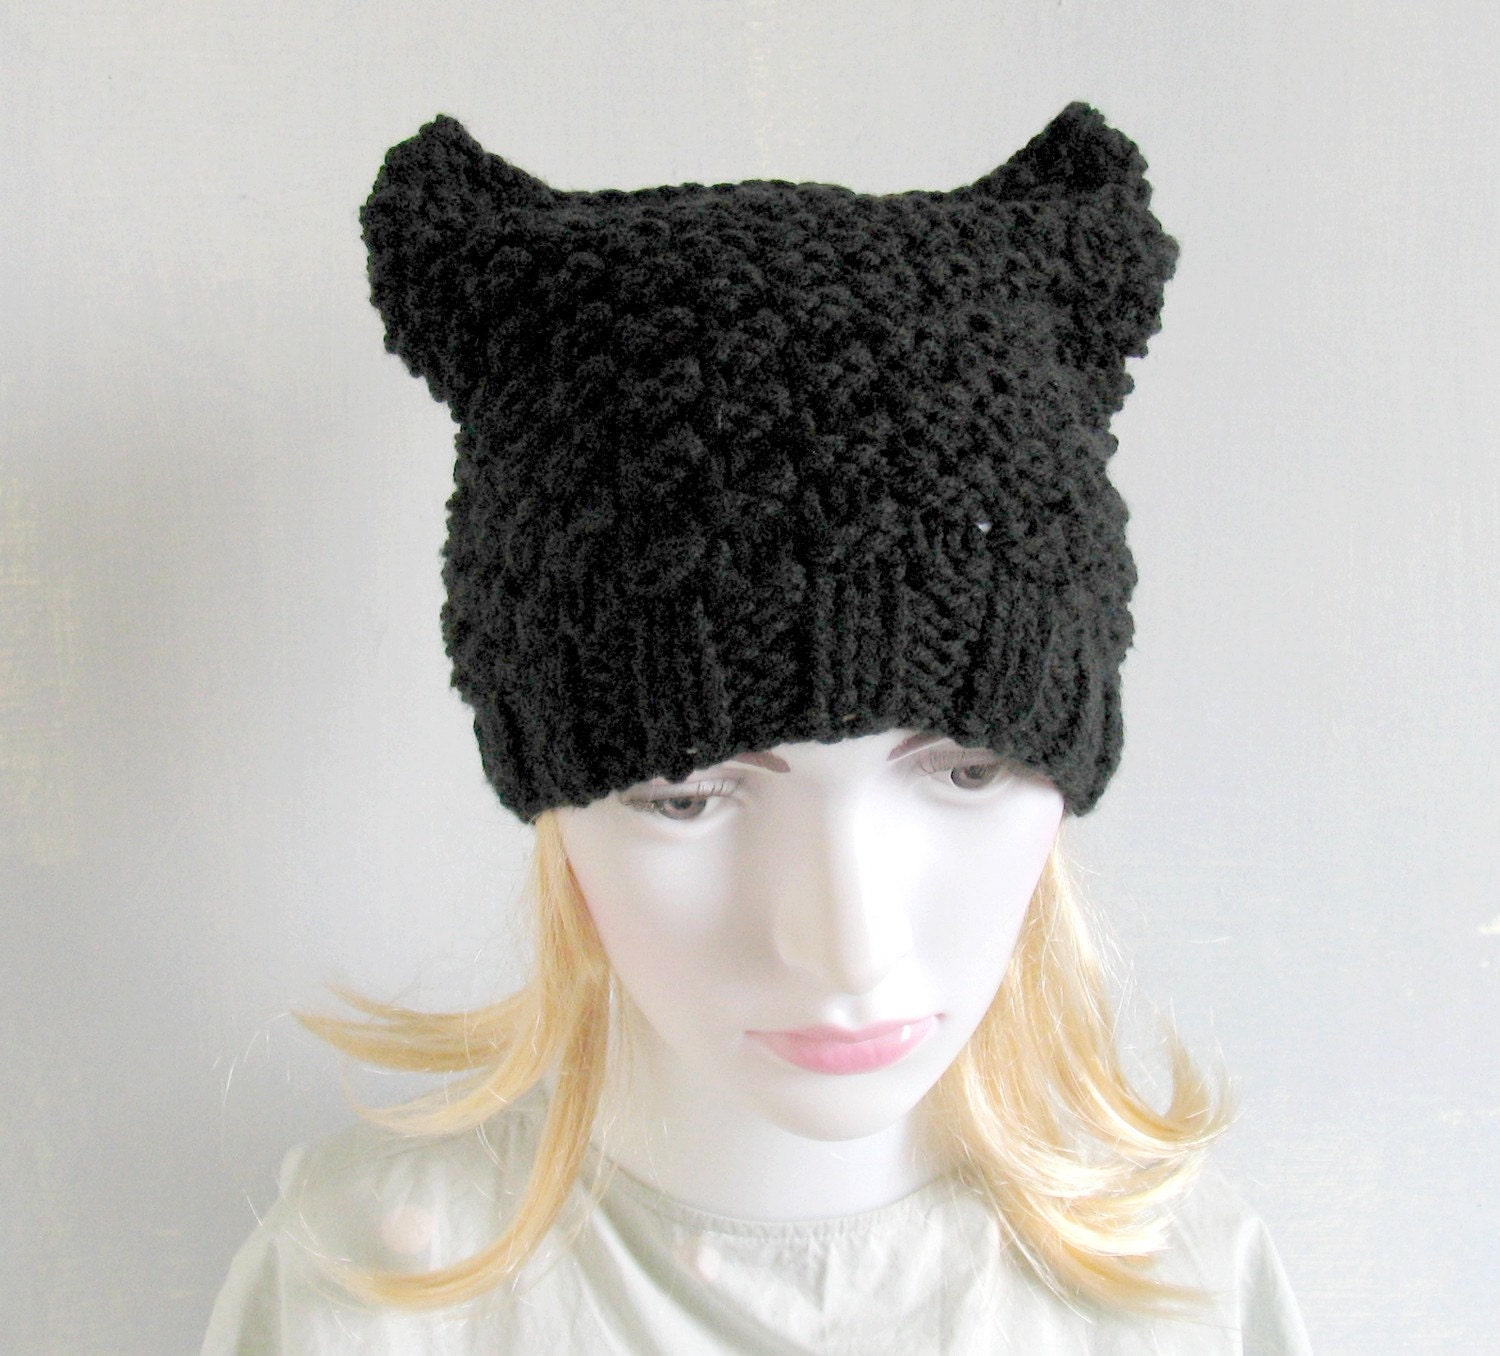 Knitting Patterns For Hats With Cat Ears : Kitchen & Dining